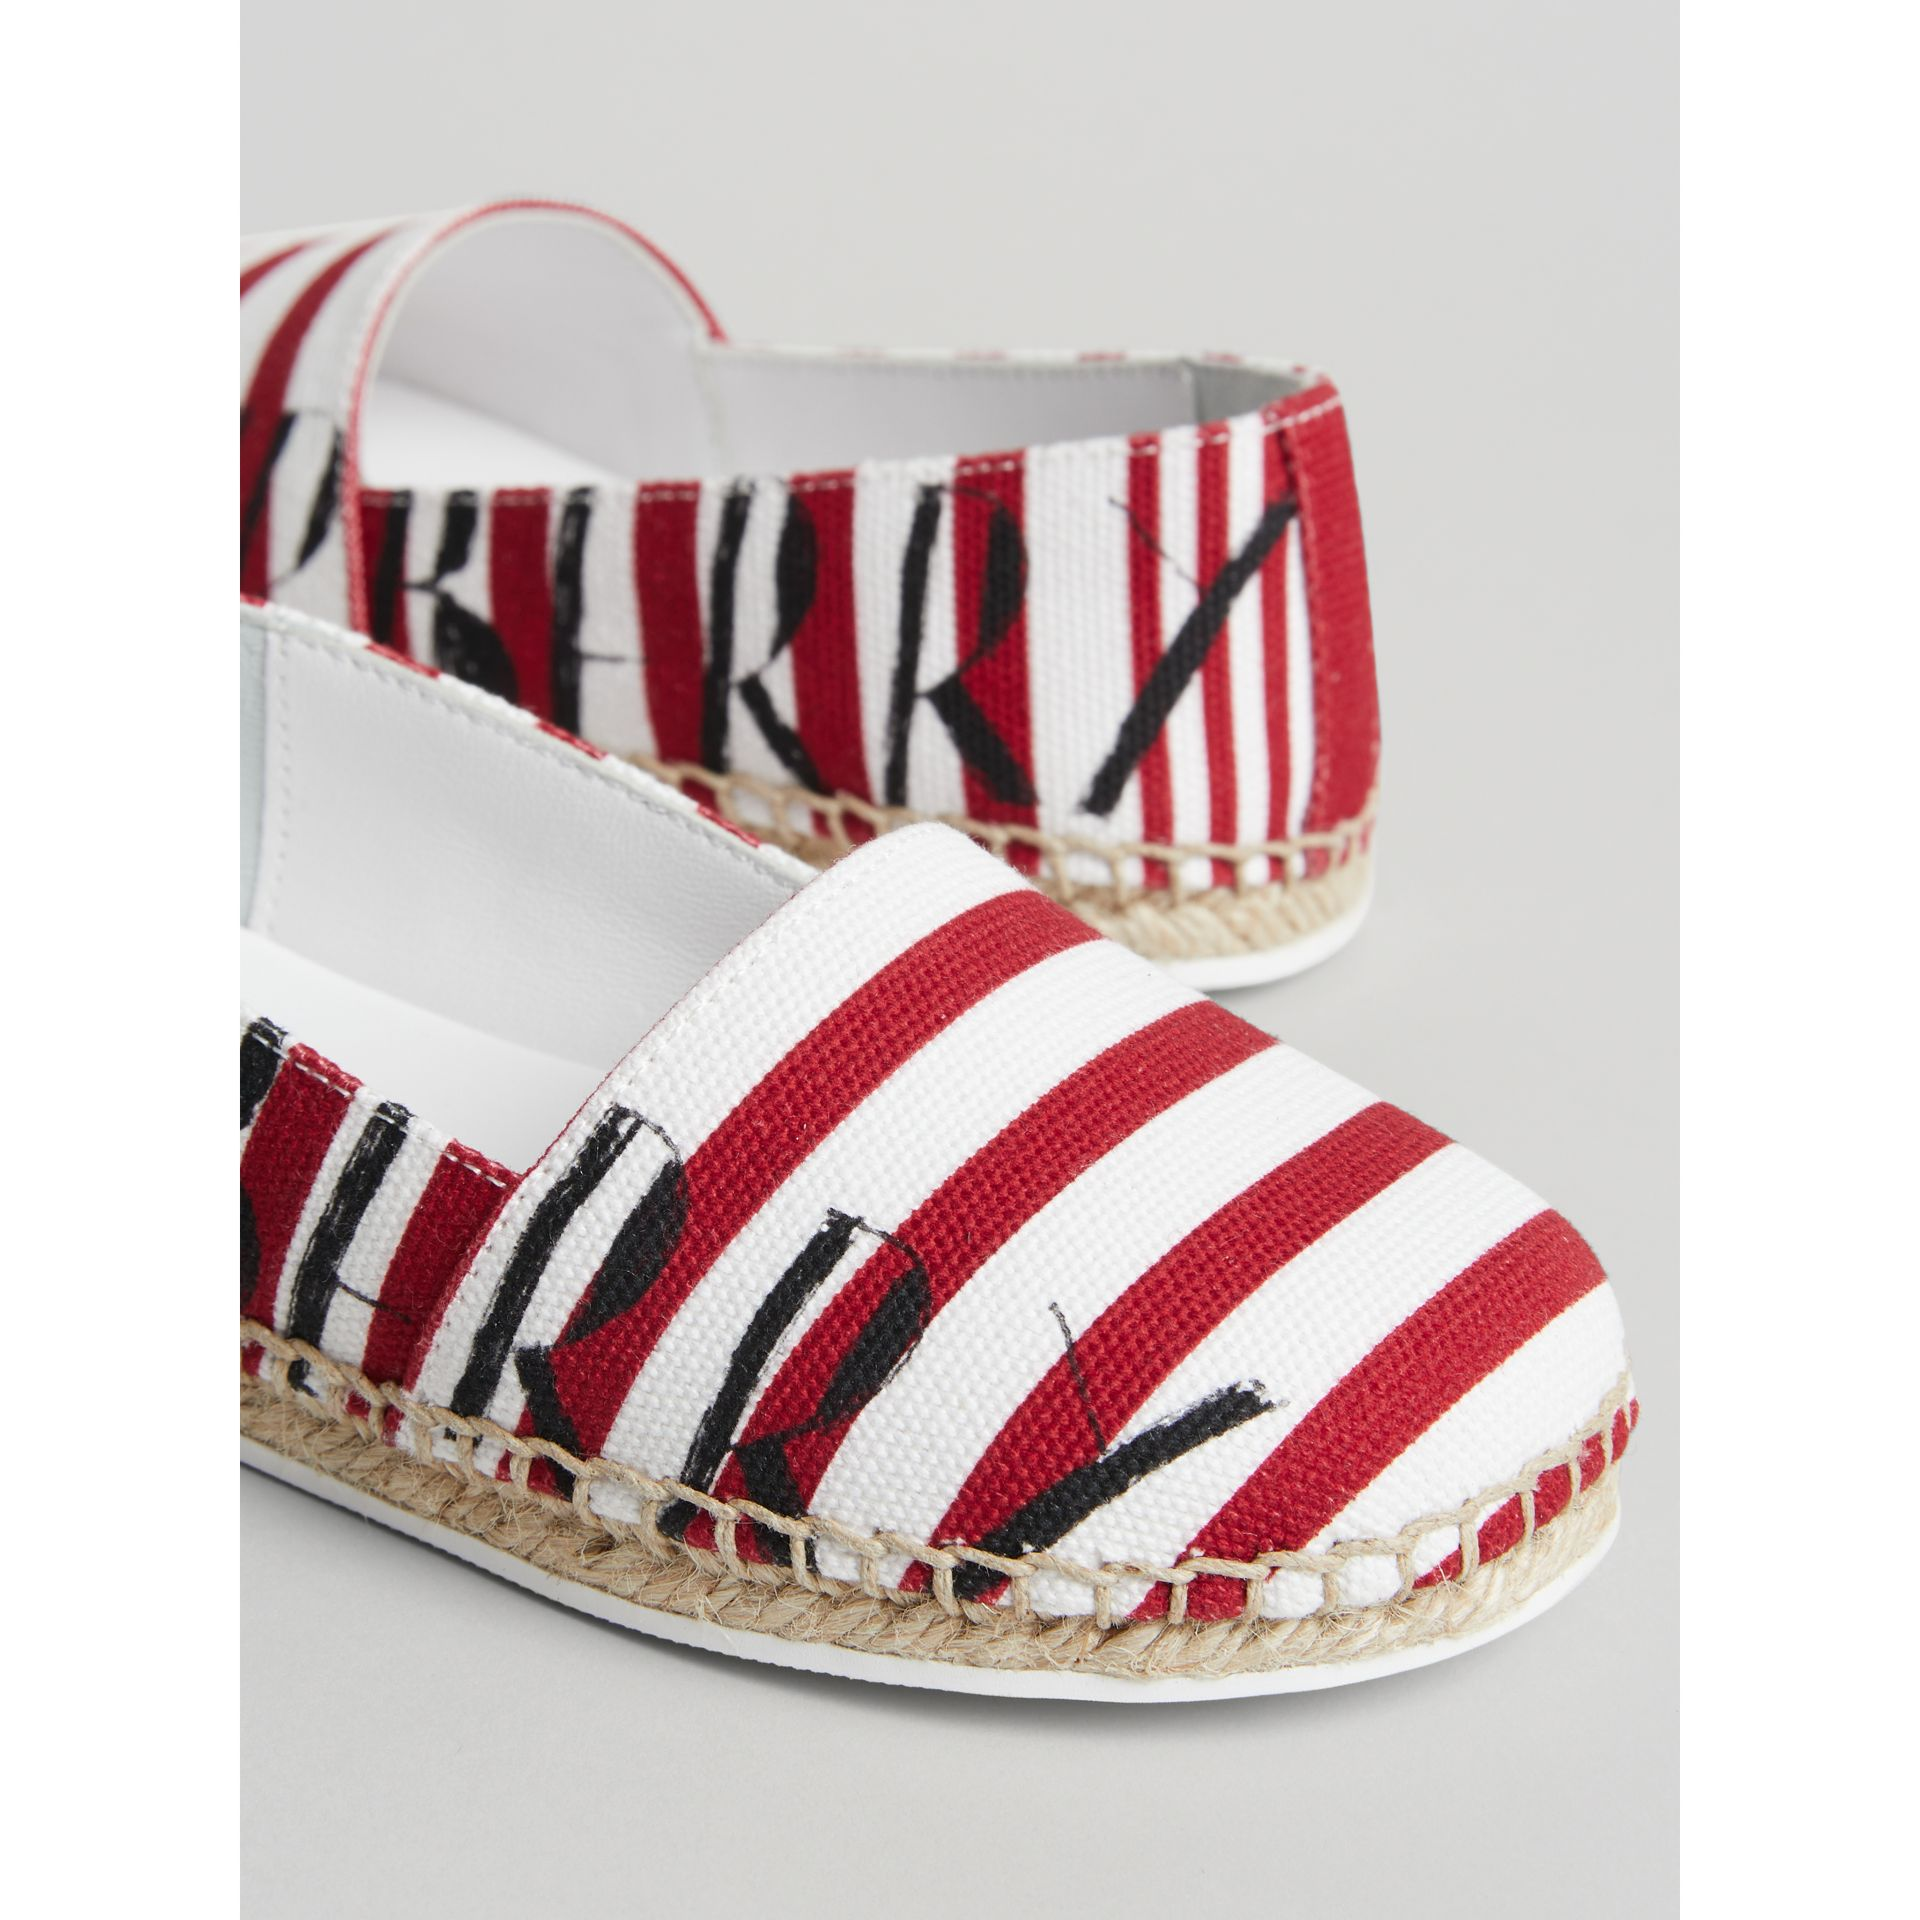 SW1 Print Striped Cotton Espadrilles in Bright Red | Burberry Australia - gallery image 1